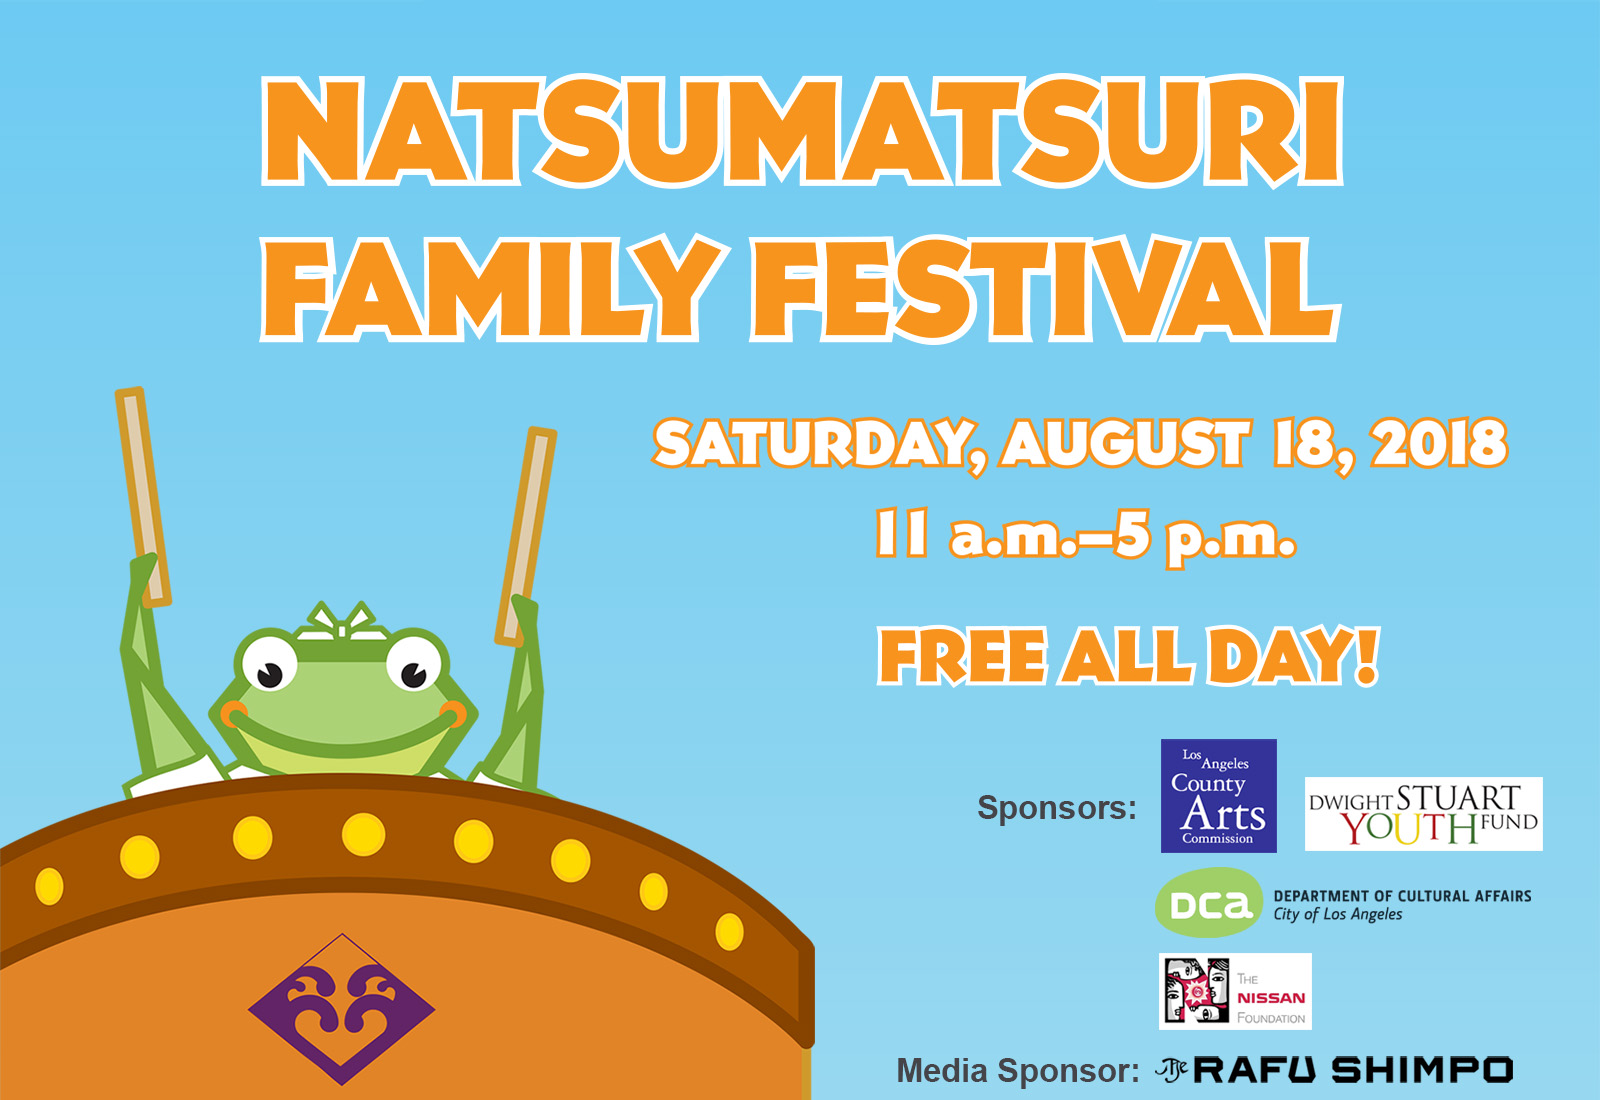 Natsumatsuri Family Festival on Saturday, August 18, 2018, 11 a.m. to 5 p.m. FREE ALL DAY! Sponsors: Los Angeles County Arts Commission; Dwight Stuart Youth Fund; Department of Cultural Affairs, City of Los Angeles; Nissan Foundation. Media Sponsor: The Rafu Shimpo